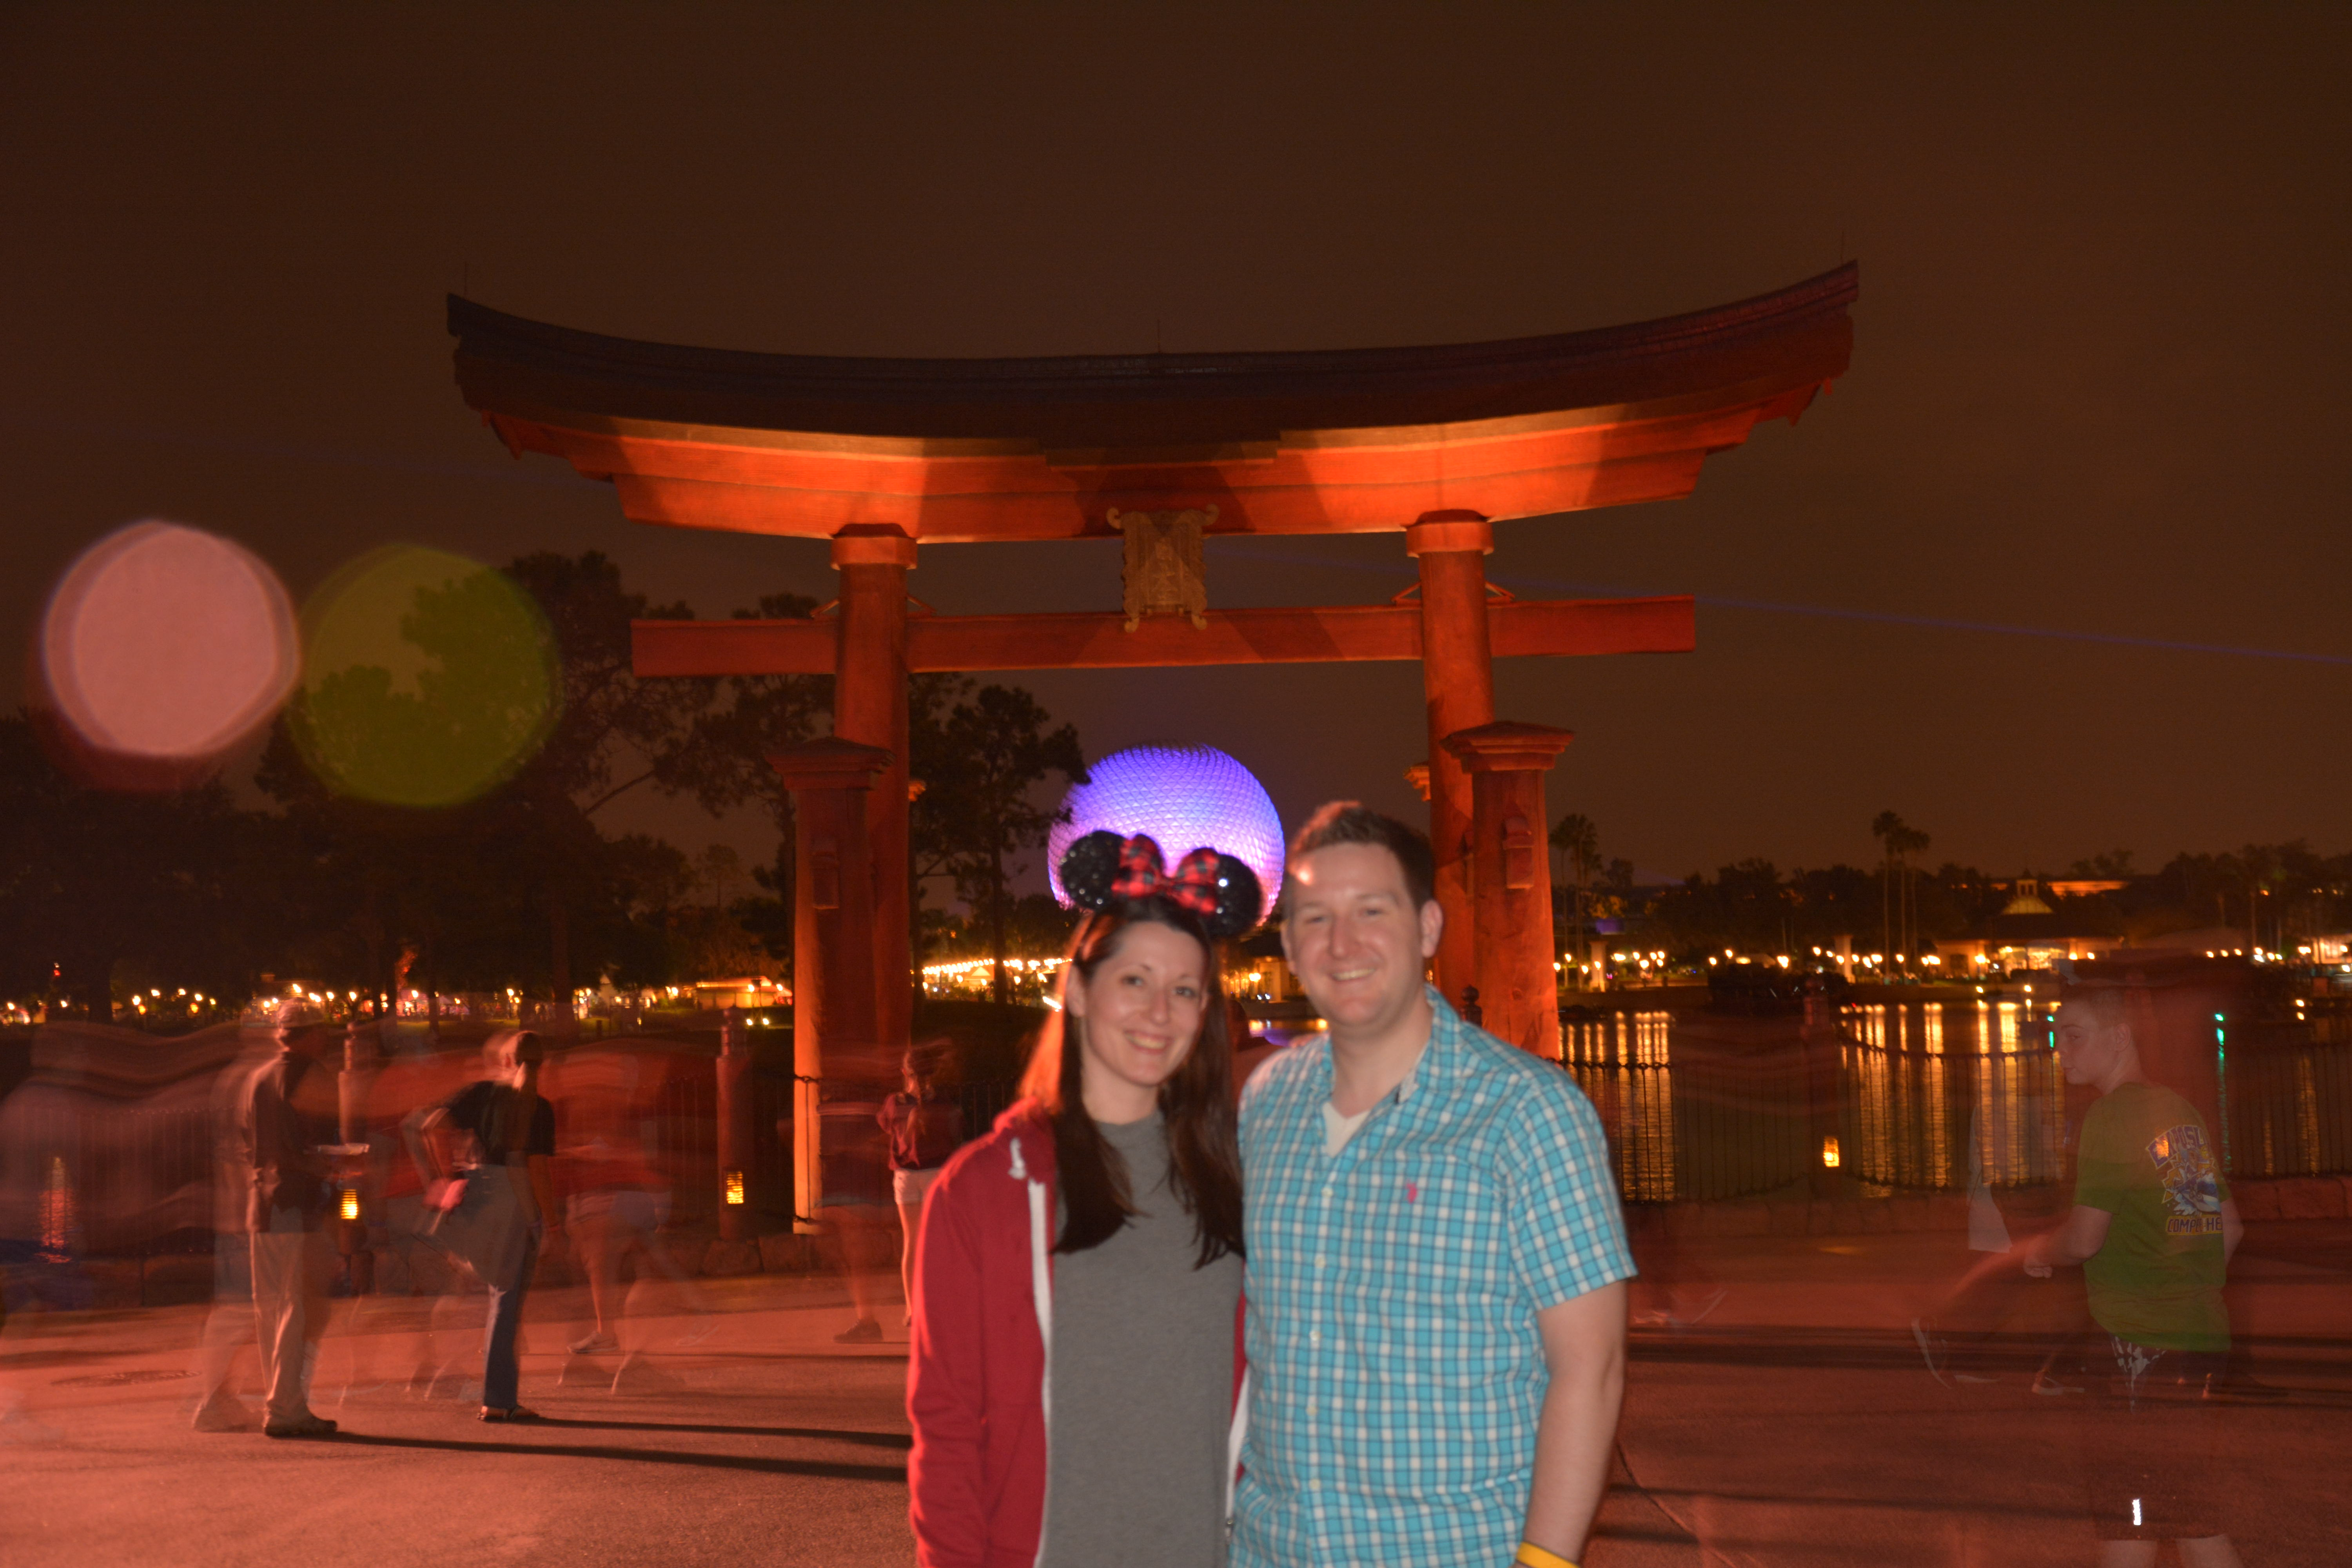 Ryan and Lauren in Japan at Epcot in front of the Torii